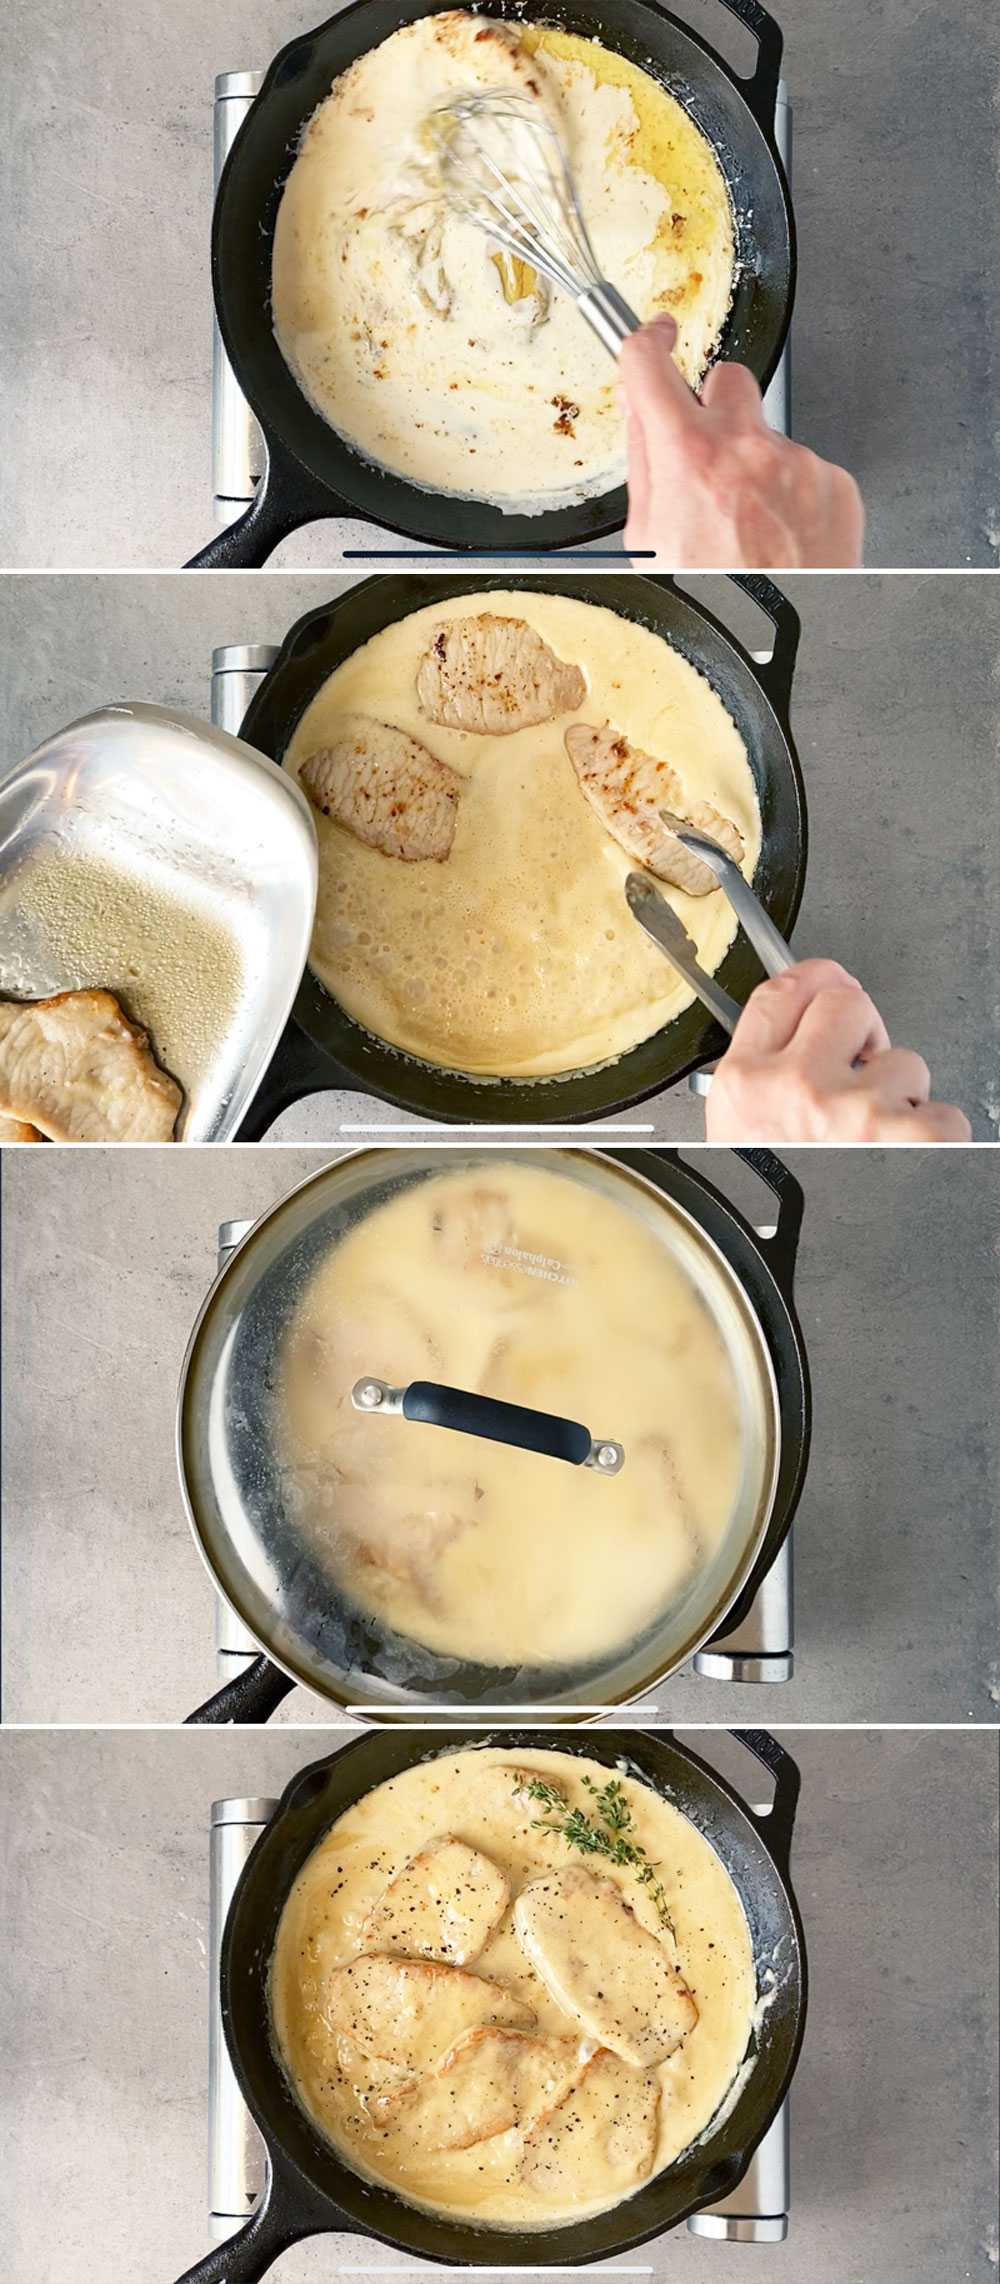 How to cook thin pork chops on the stove part 2 - making a pan sauce.